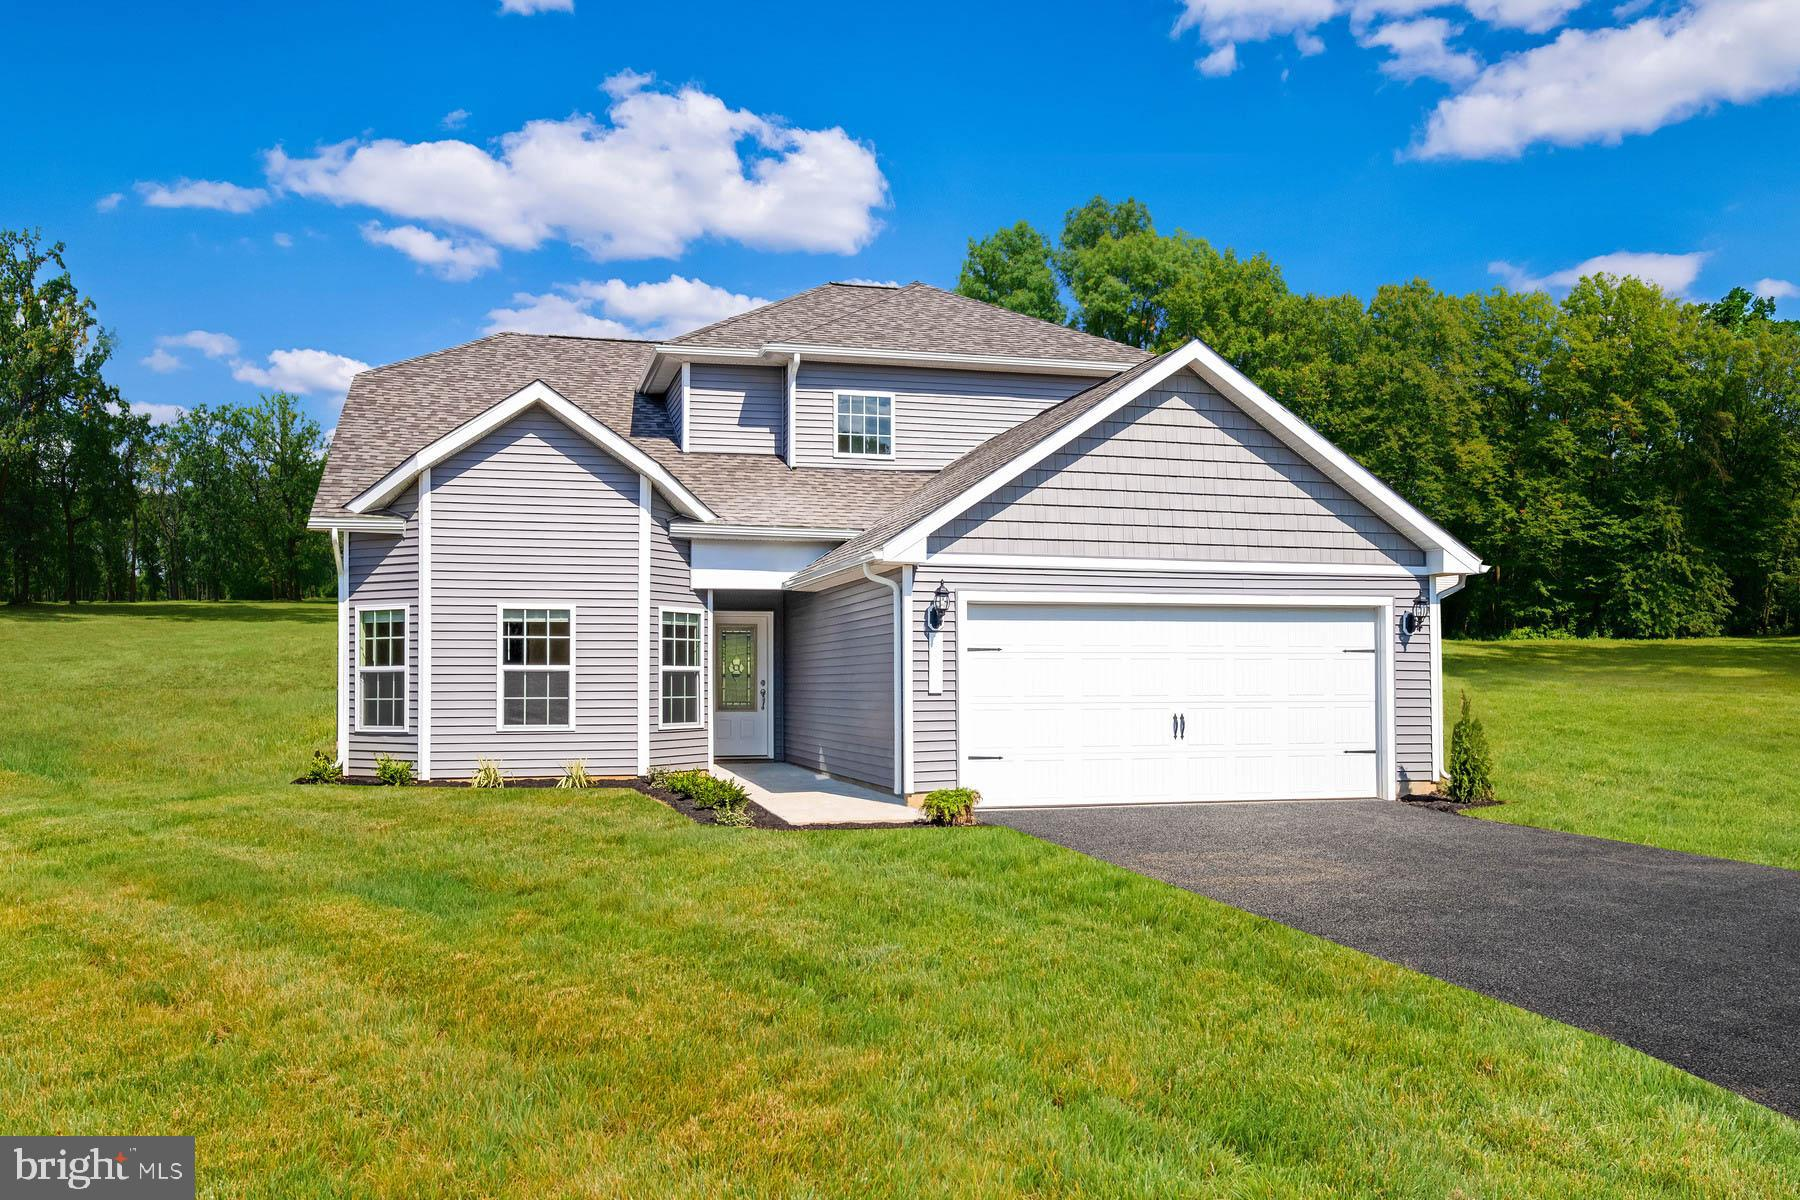 This spacious, new two-story home is now available in the beautiful community of Brookfield, where h